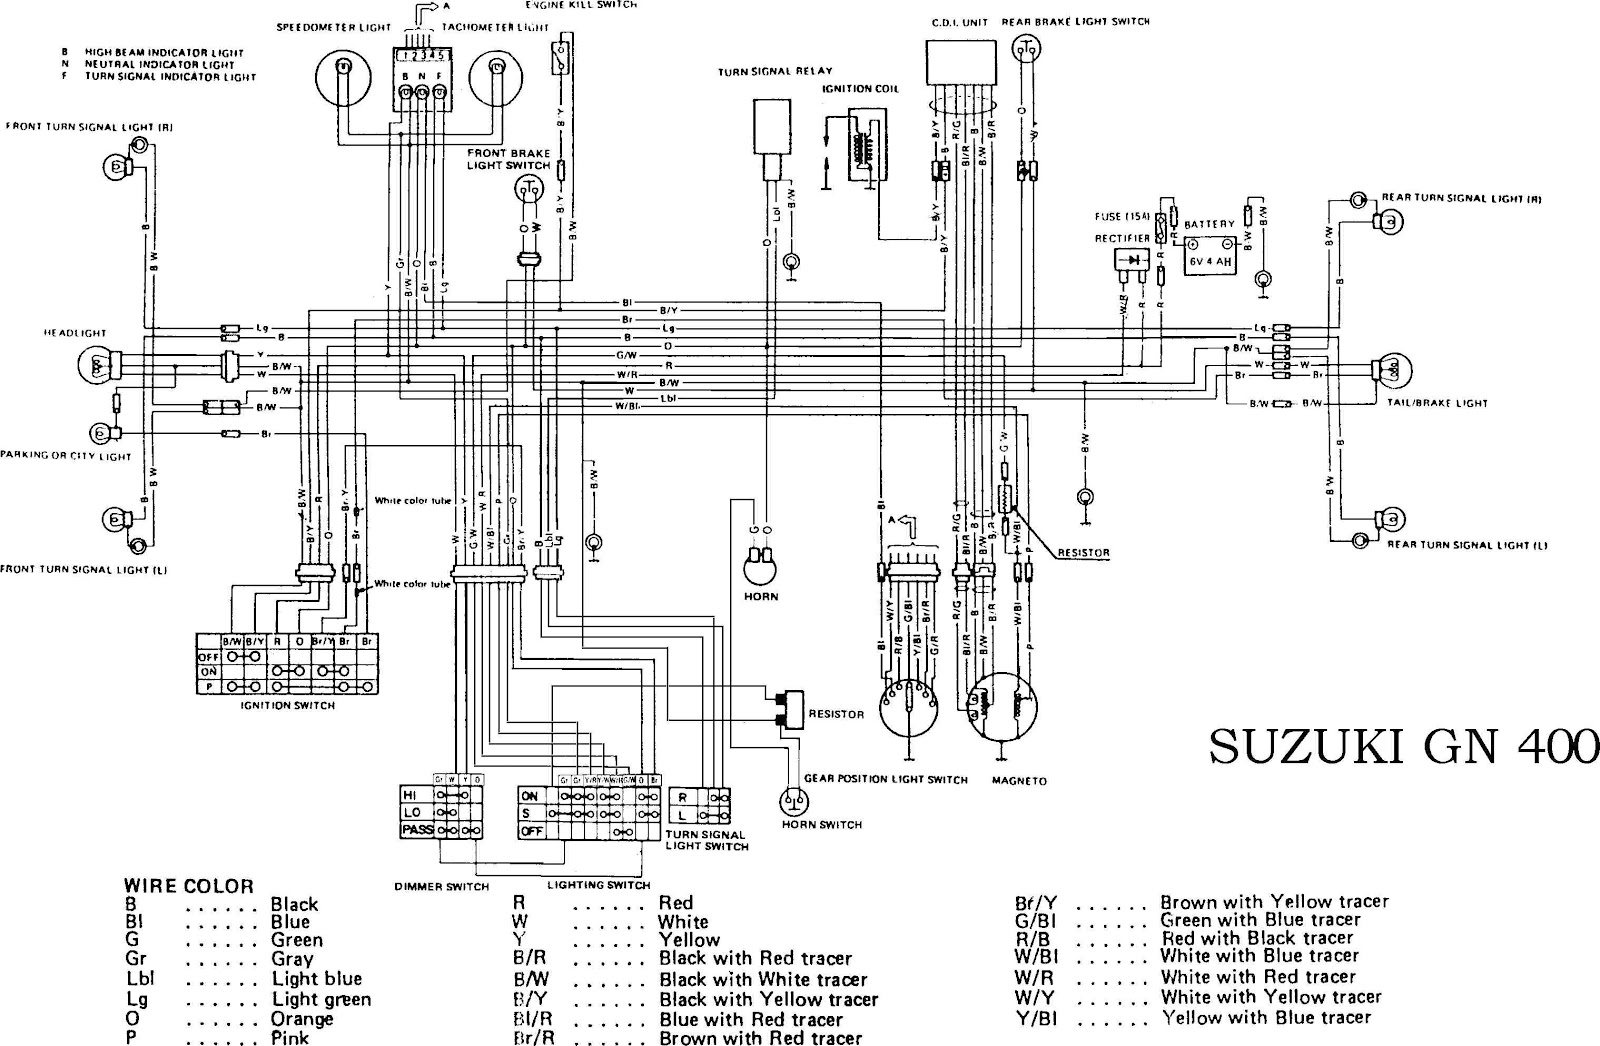 Suzuki gn motorcycle complete electrical wiring diagram